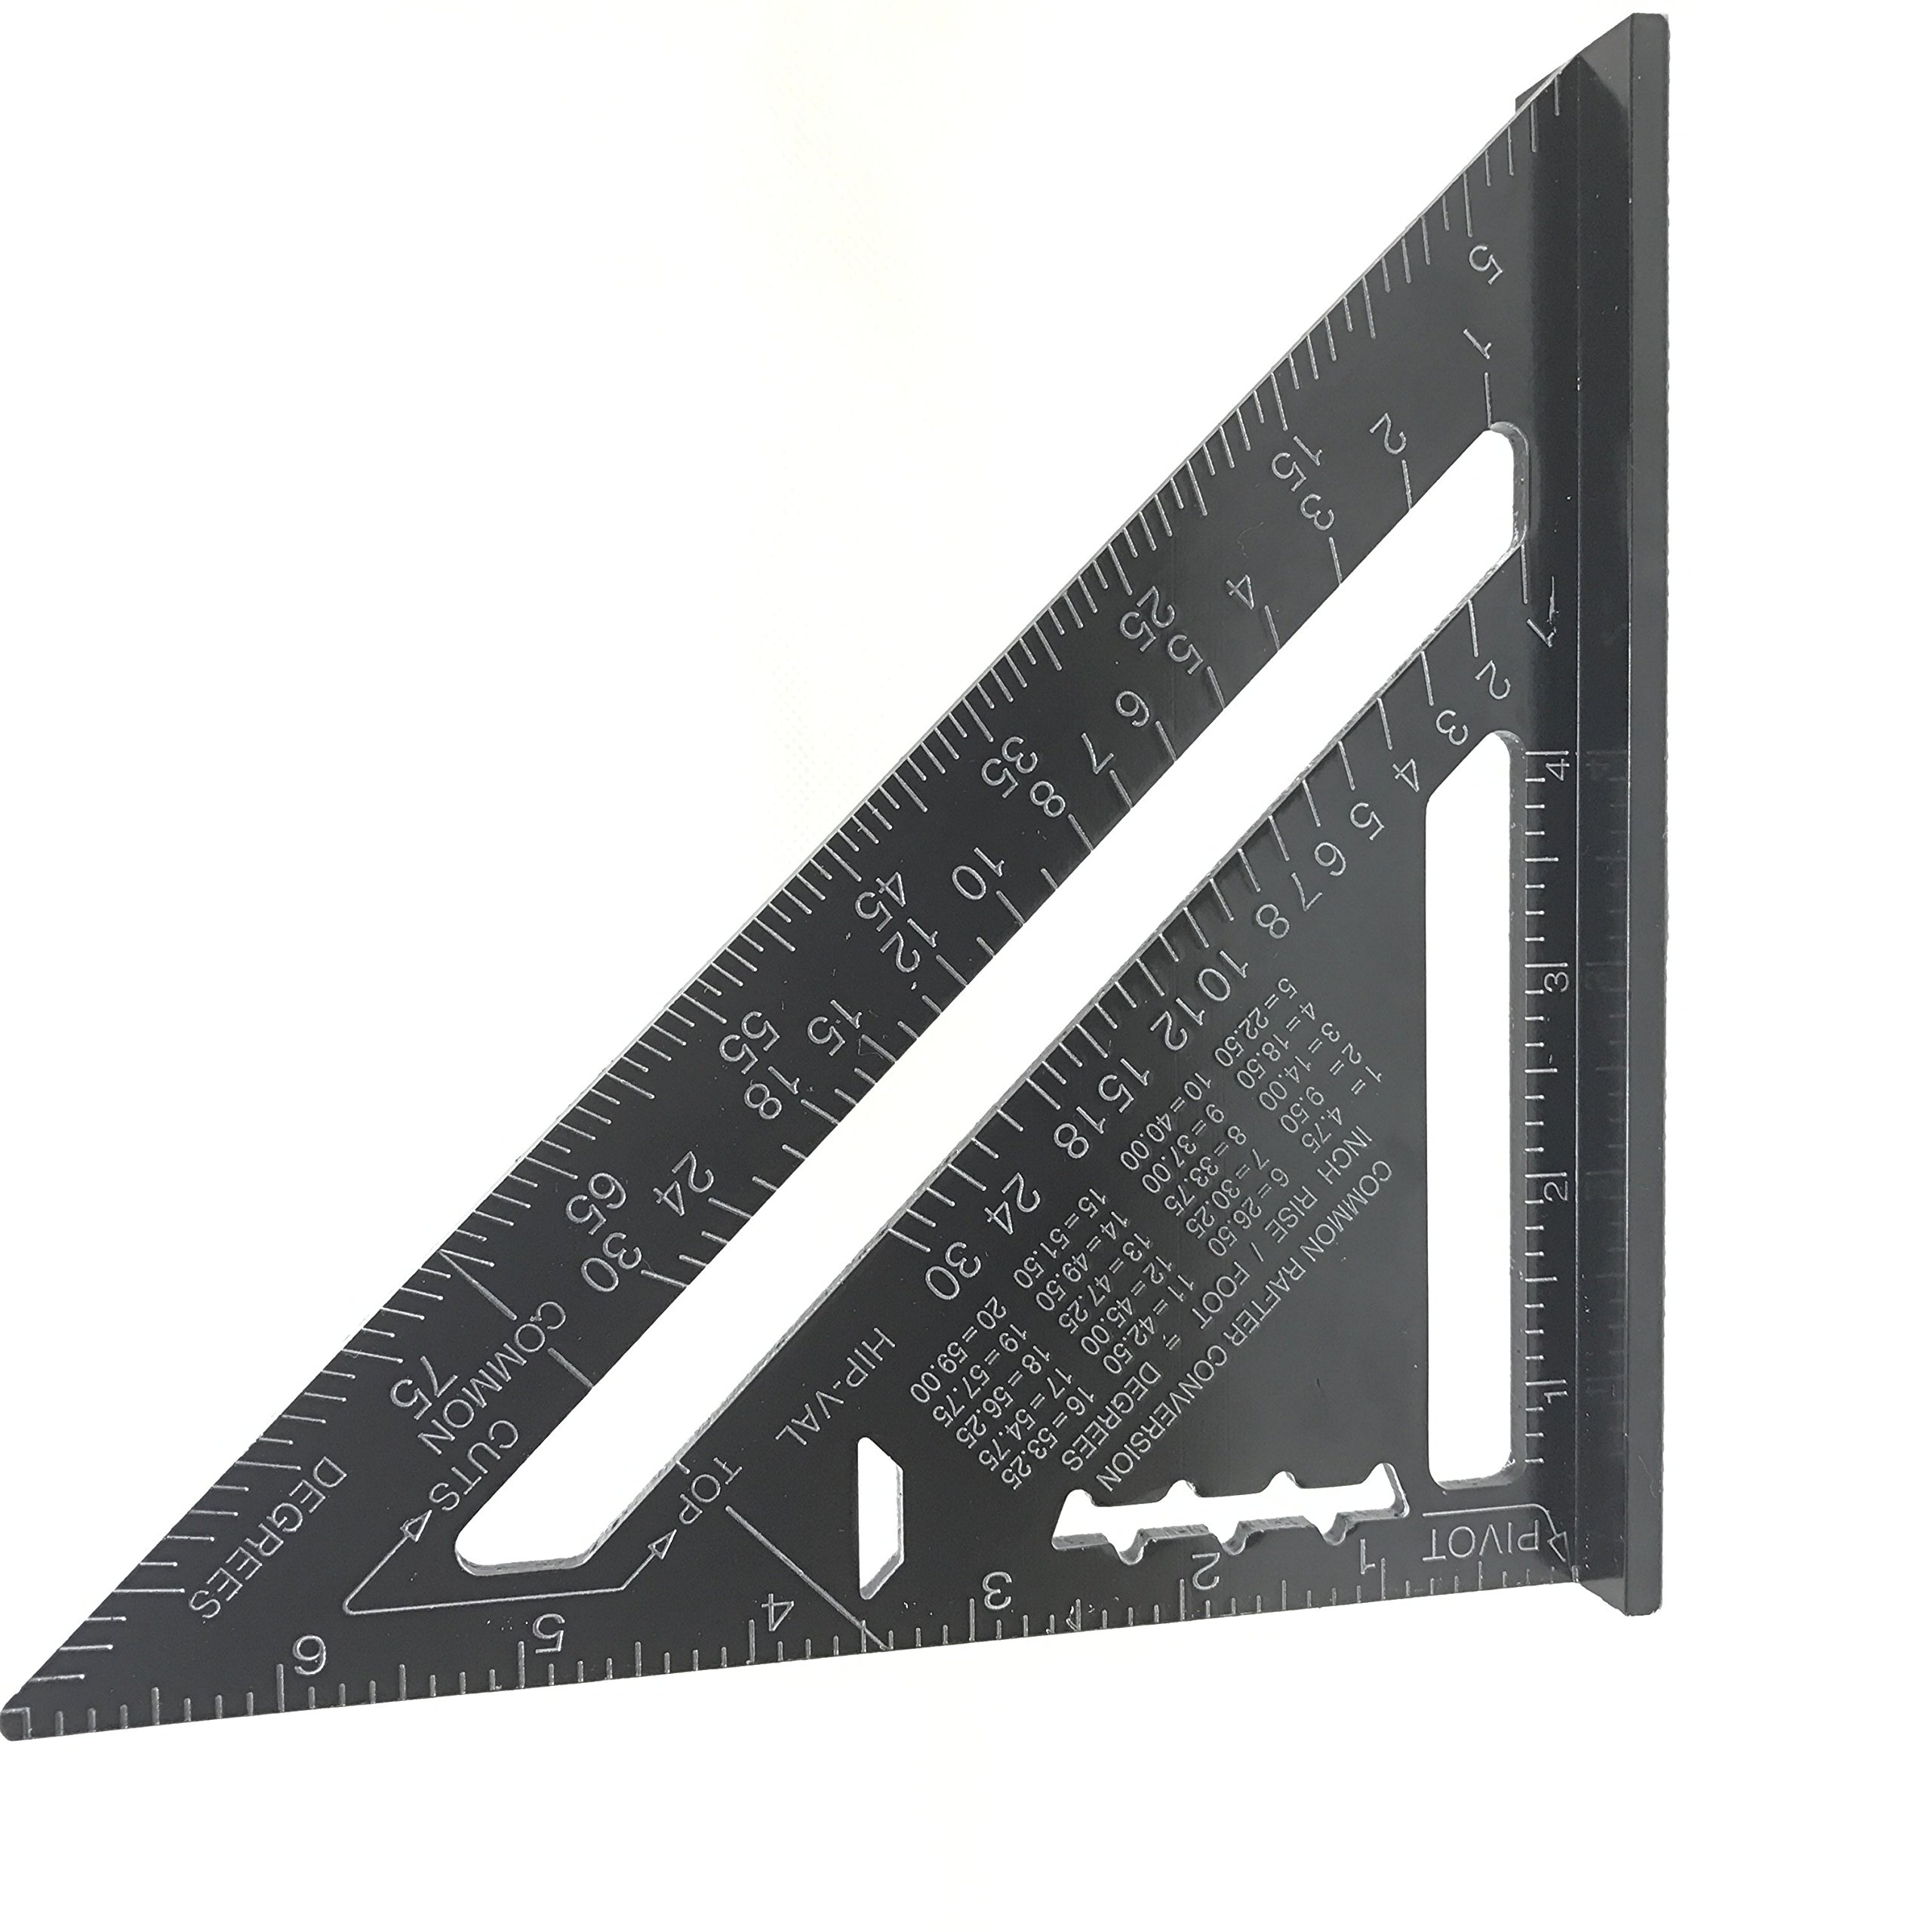 7 Inch Black Aluminum Alloy Quick Premium Read Rafter Speedlite Speed Square Layout Tool Triangle Angle for Carpenter